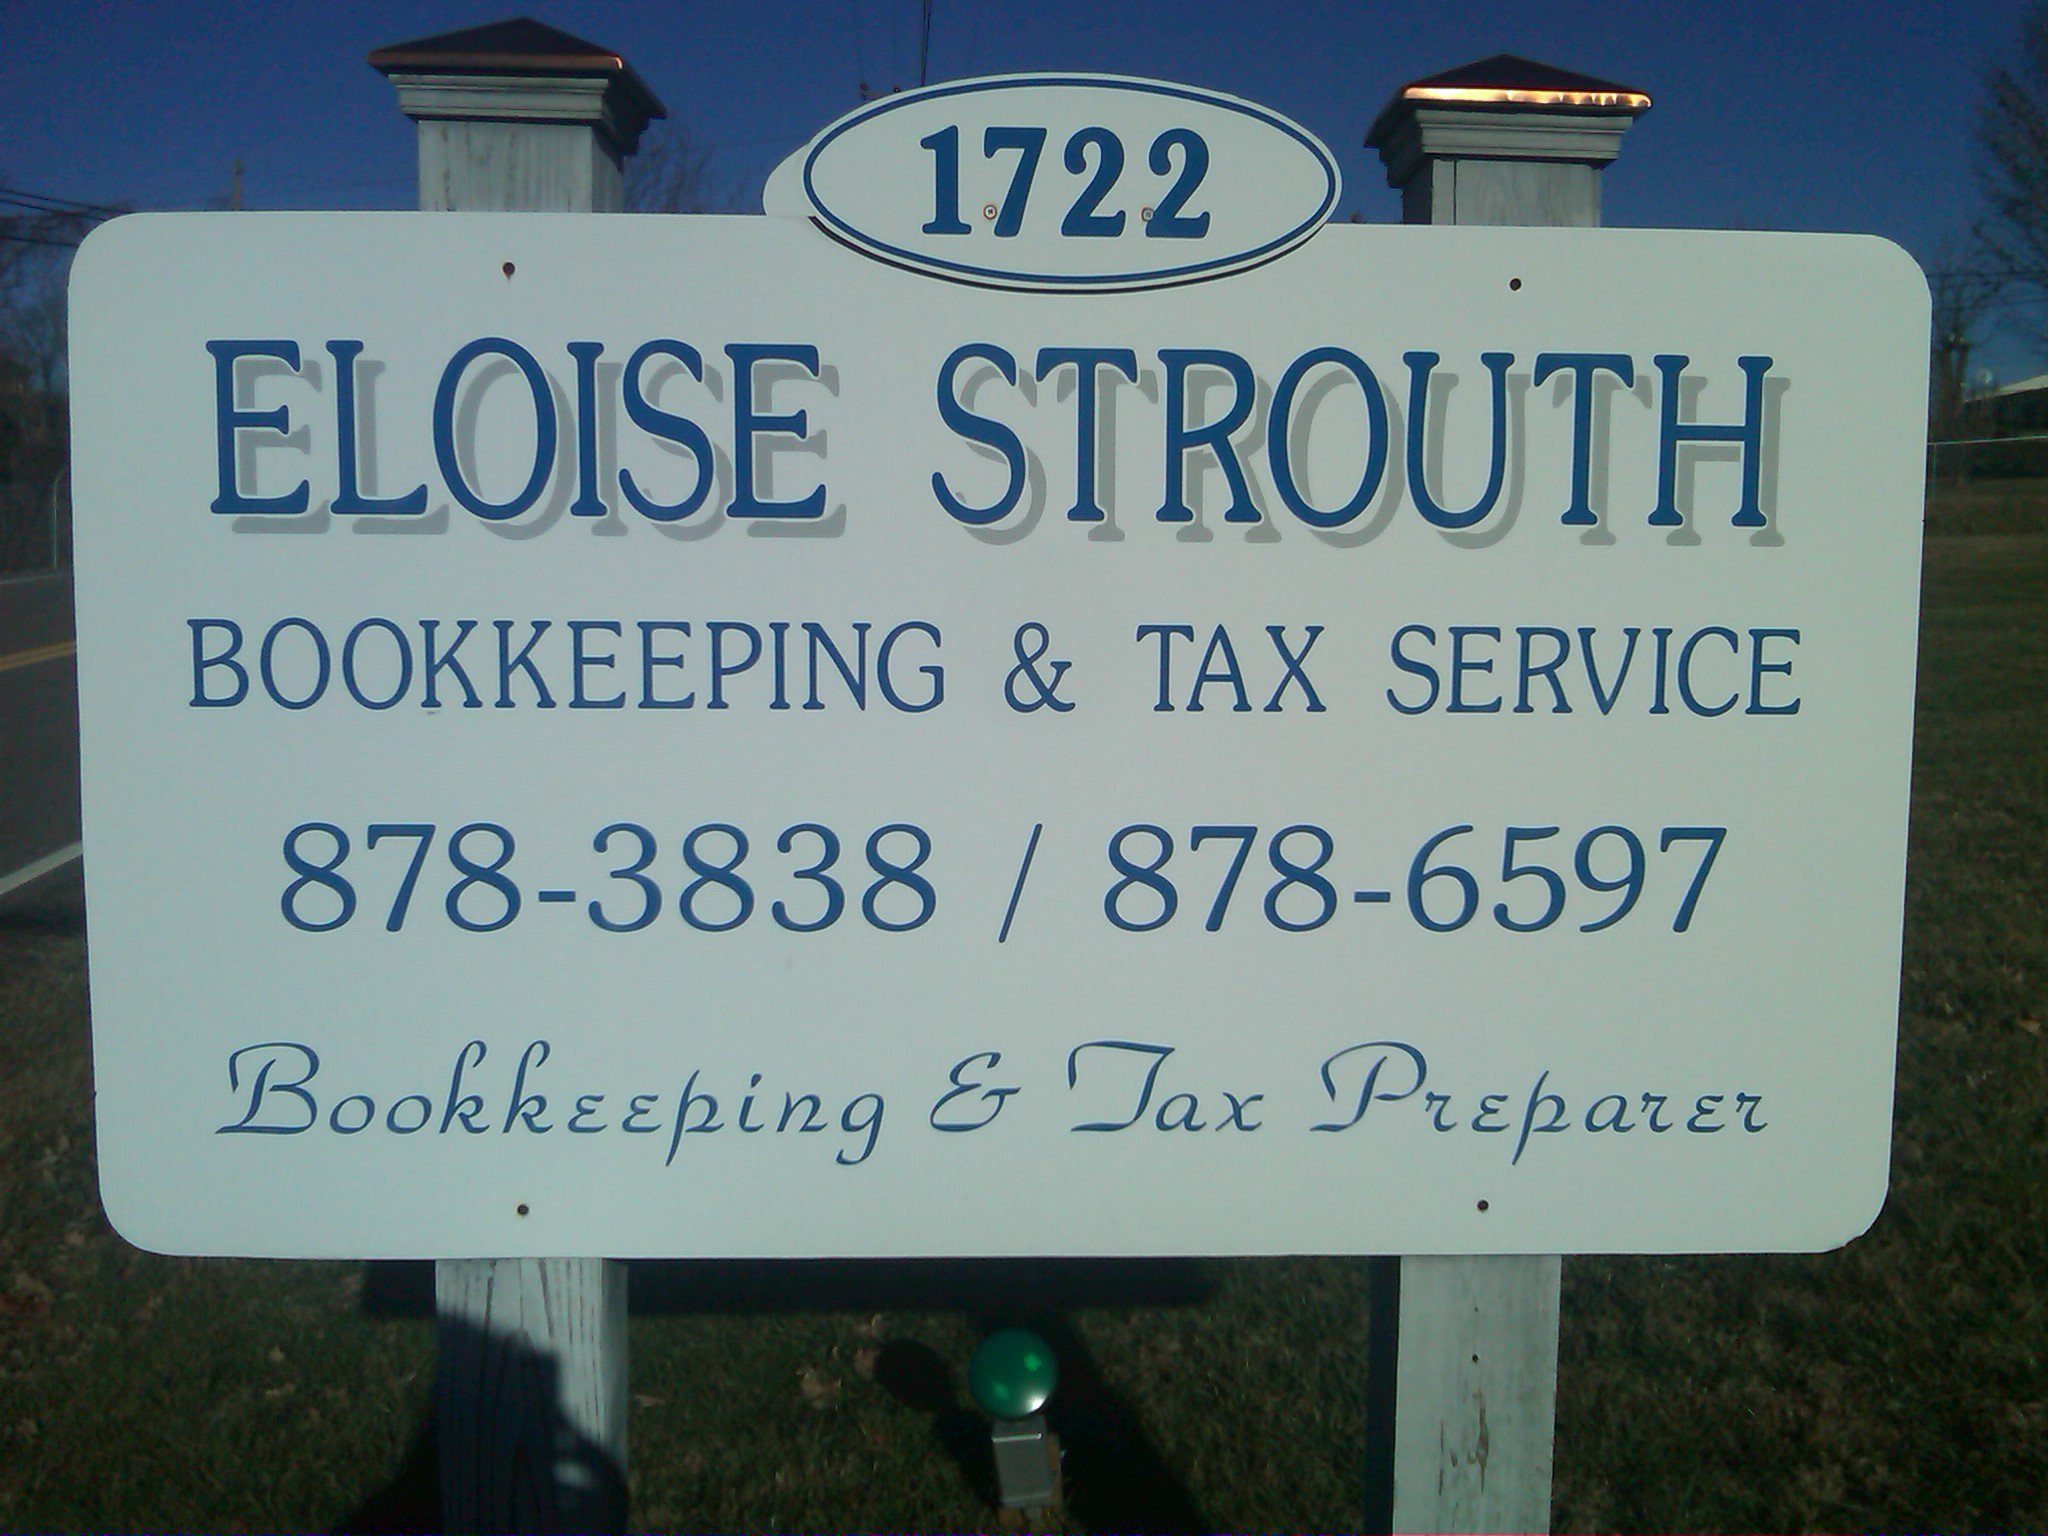 Eloise Strouth Bookkeeping & Tax Service